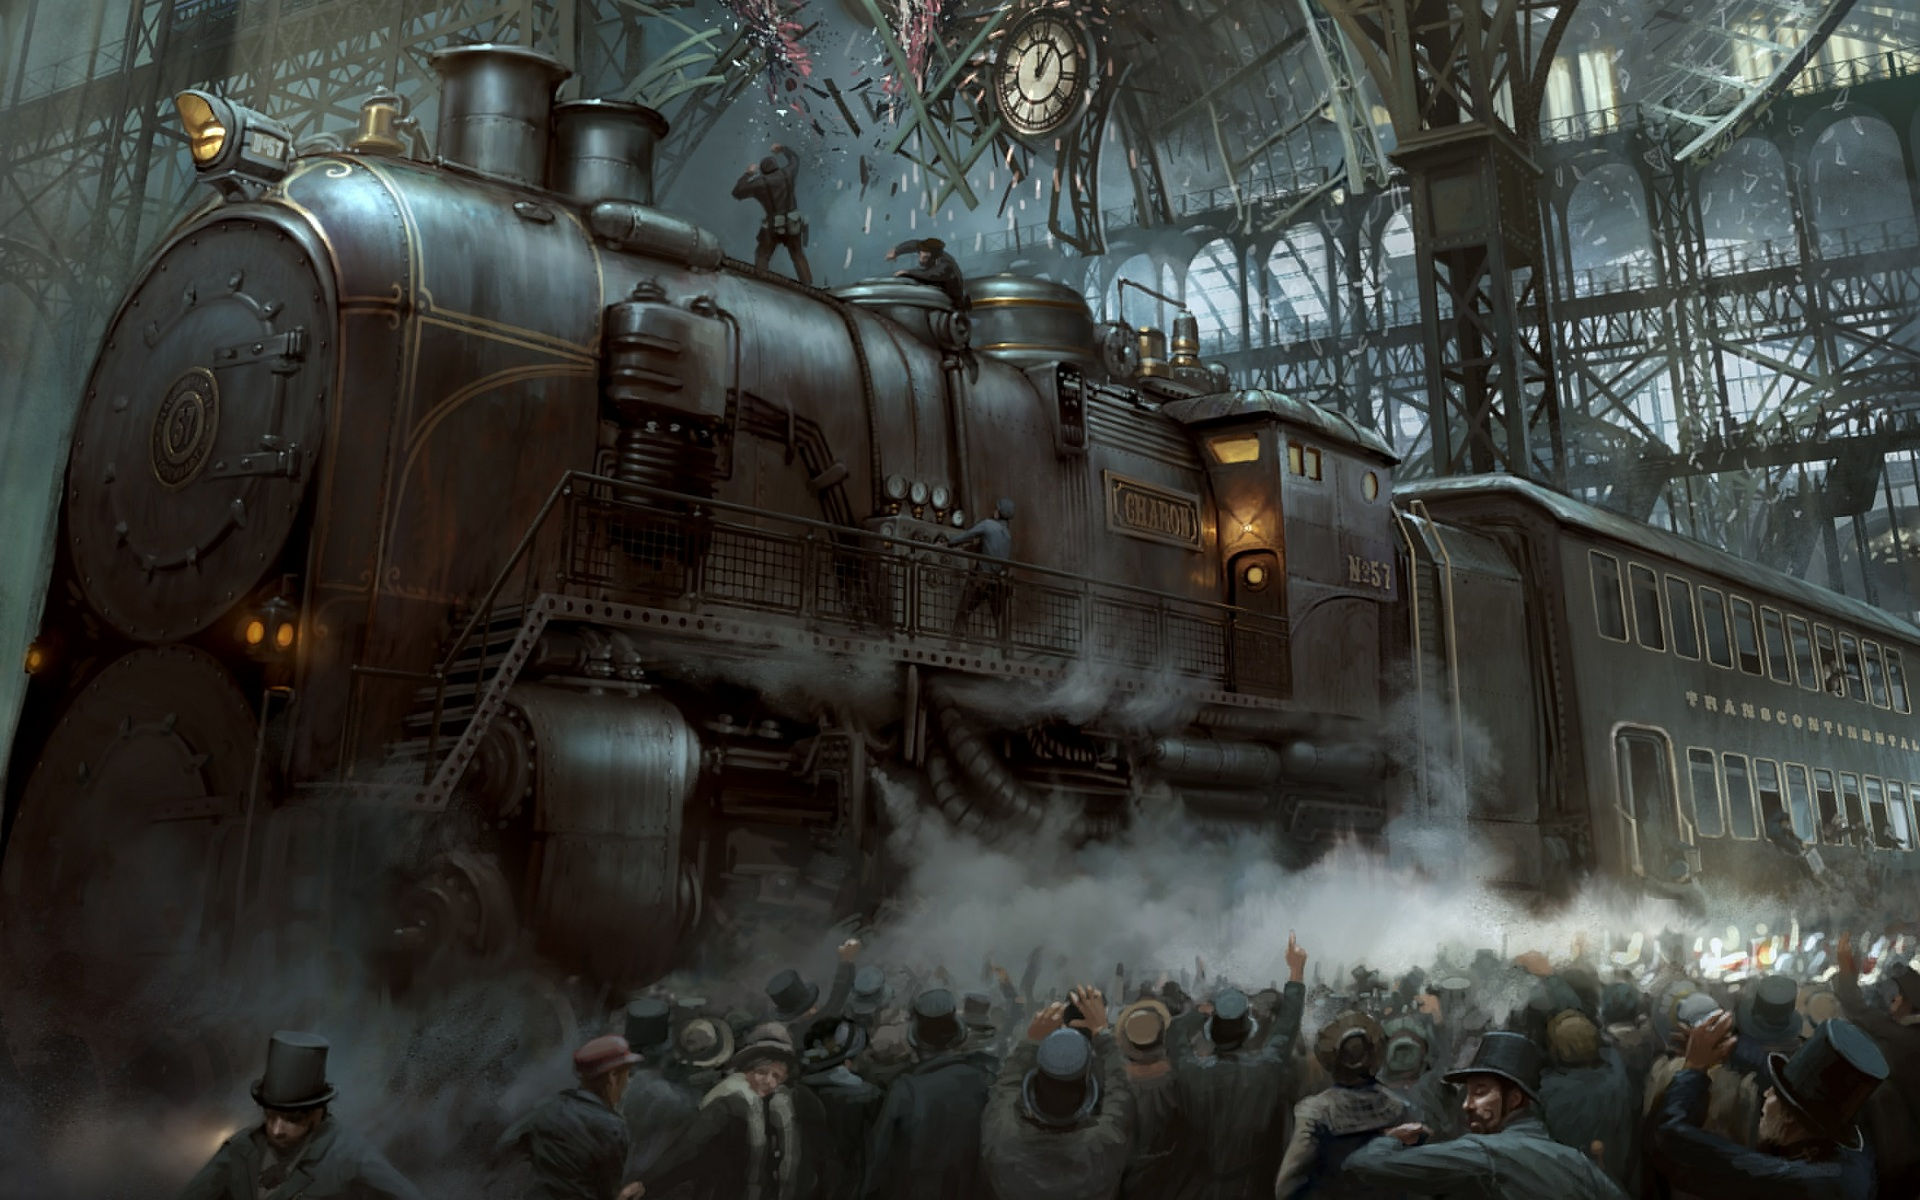 Steampunk Computer Wallpapers Desktop Backgrounds 1920x1200 ID 1920x1200